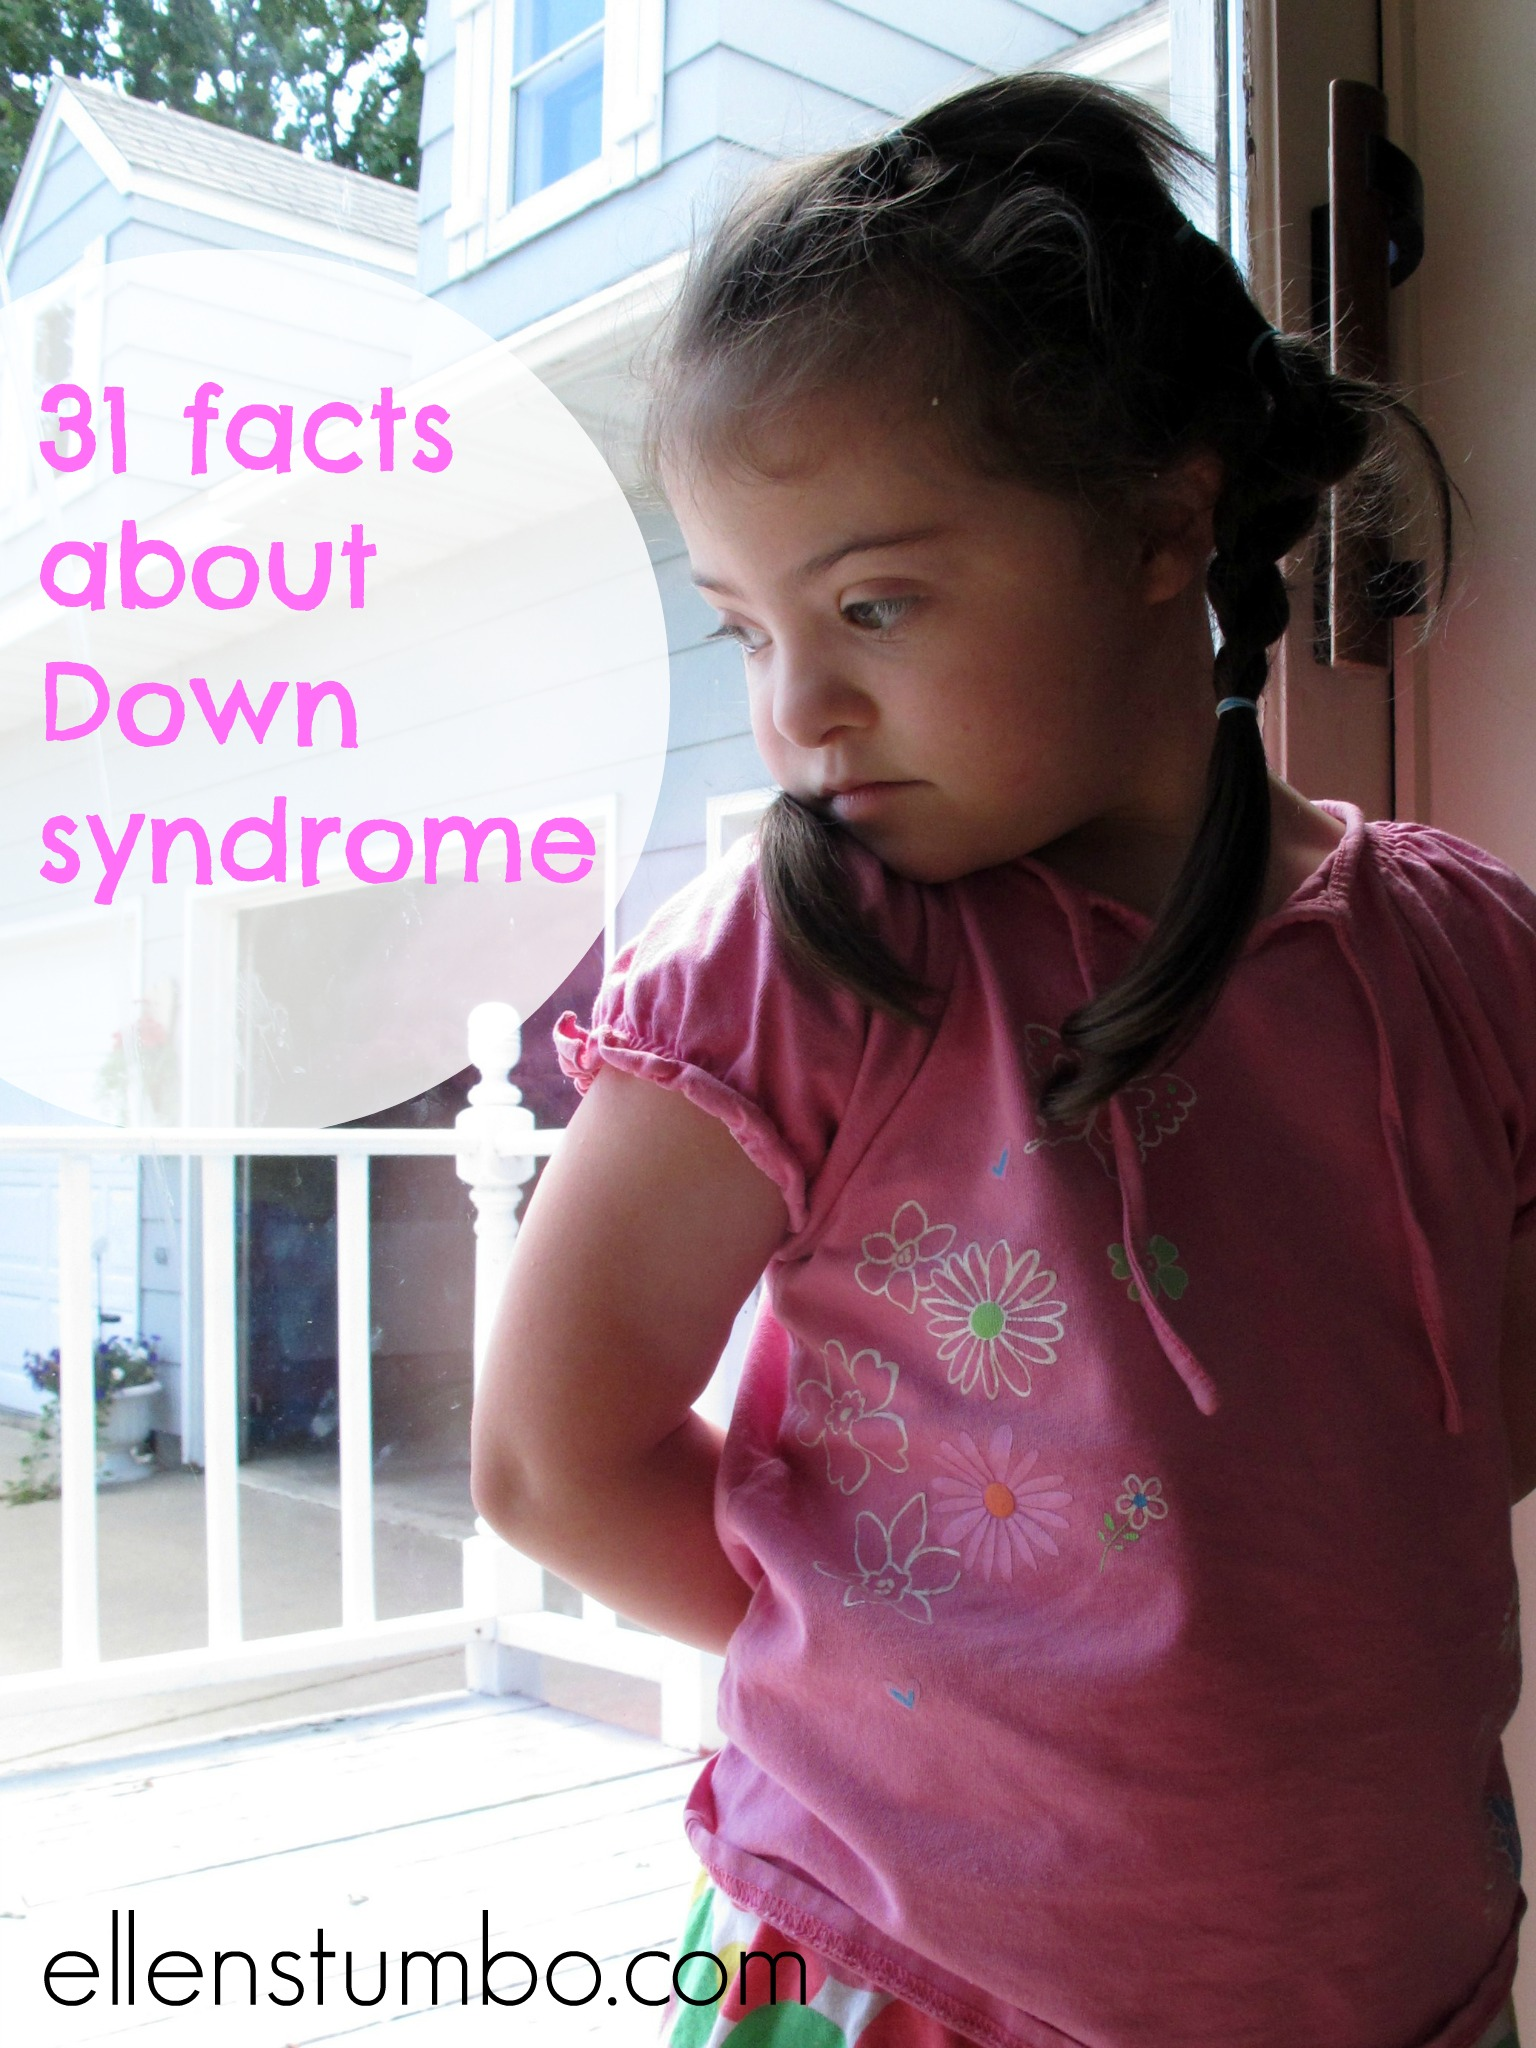 31 Facts About Down Syndrome